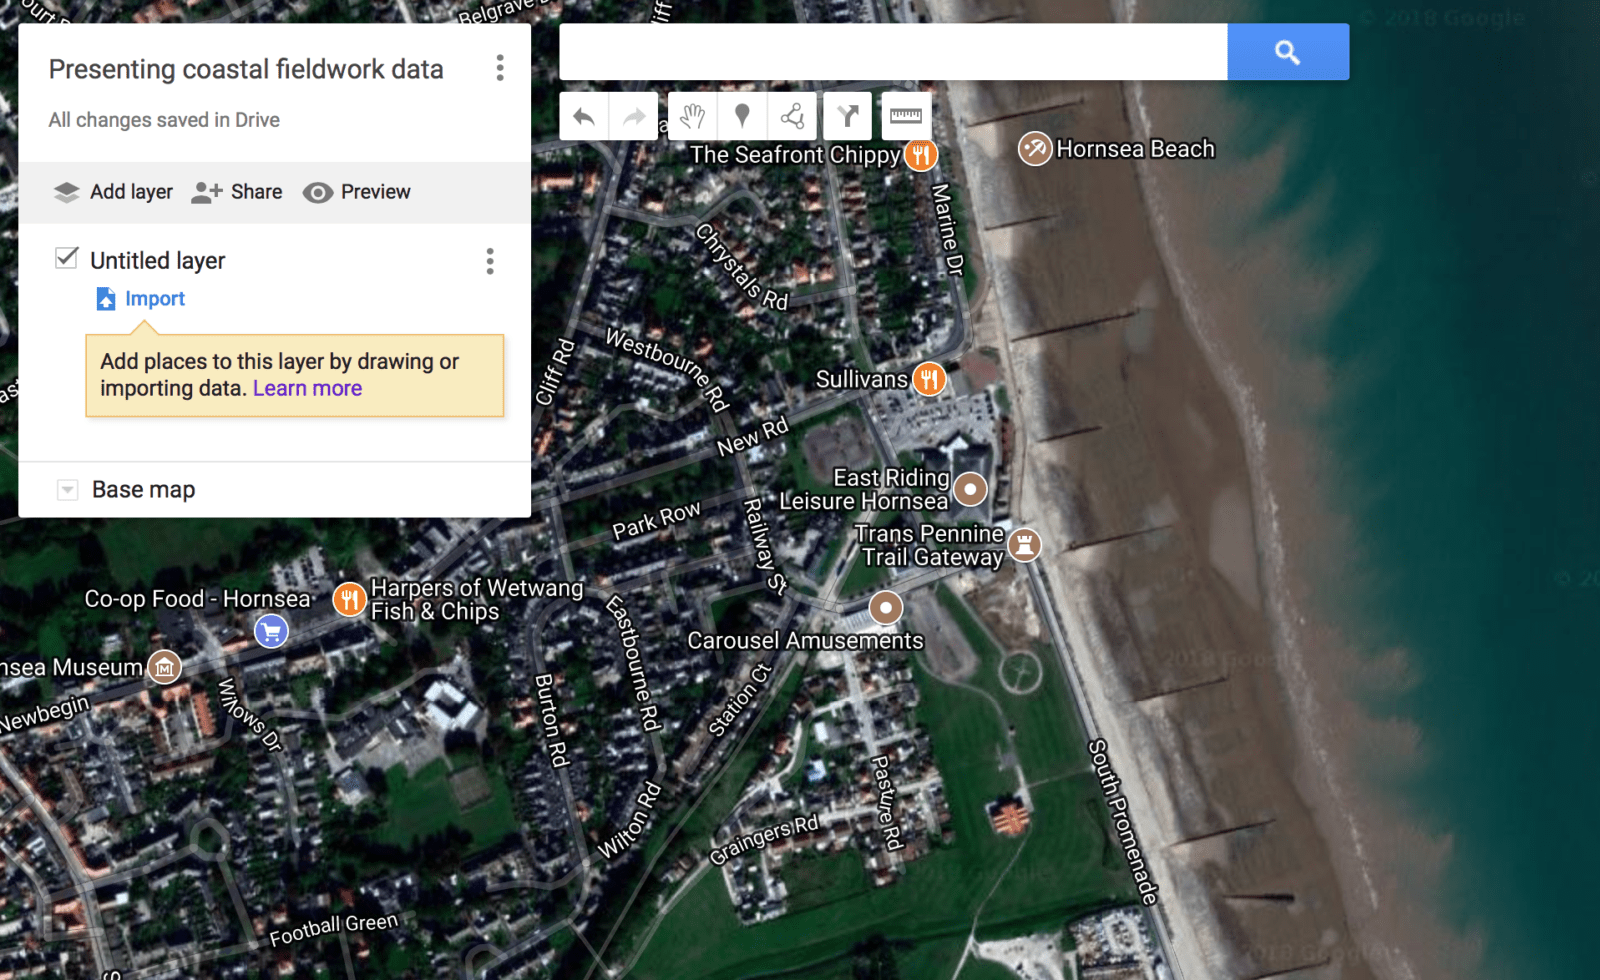 How Can Coastal Fieldwork Data Be Presented On Google My